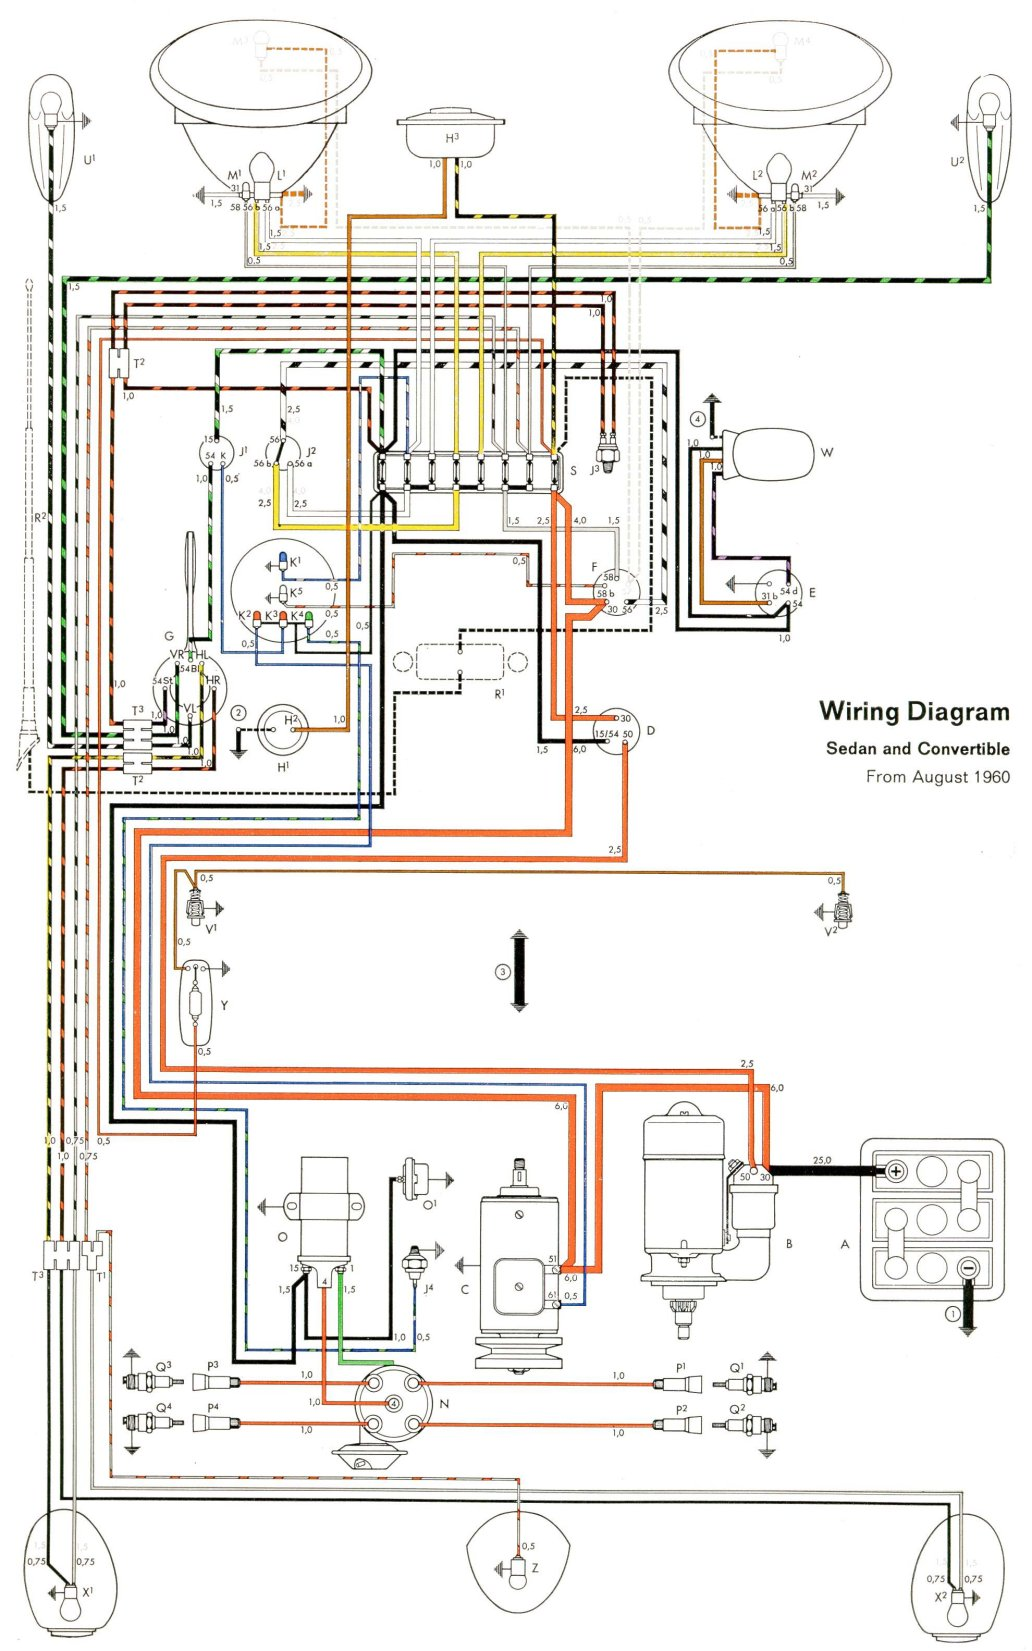 bug_61 thesamba com type 1 wiring diagrams vw beetle wiring diagram at virtualis.co